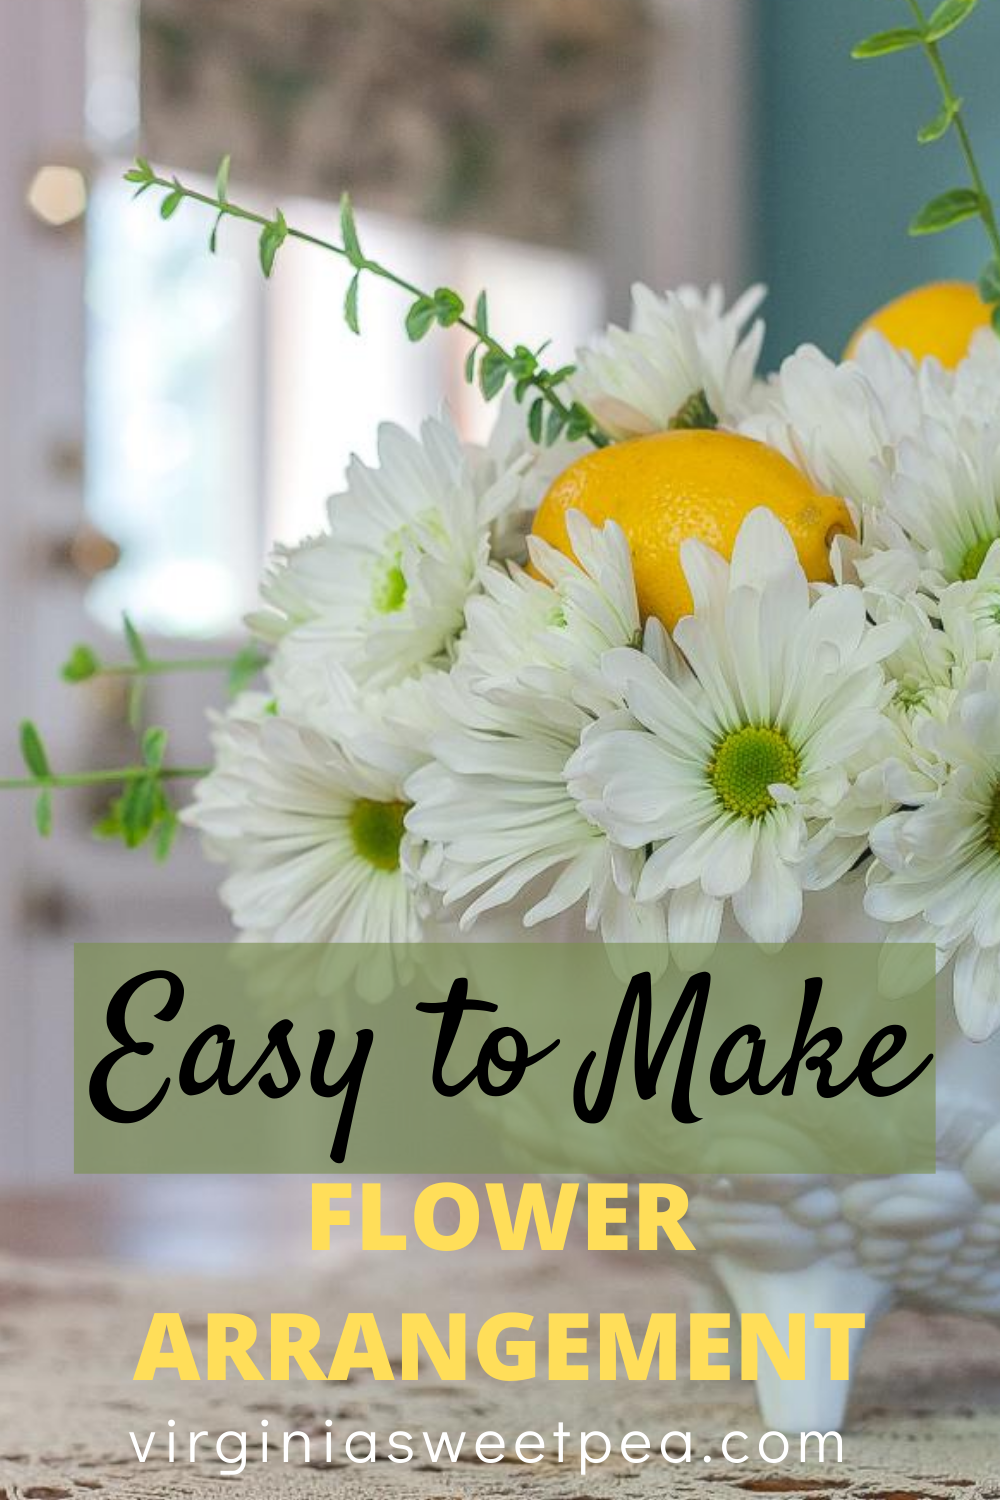 Easy to Make Flower Arrangement - Learn how to make a beautiful flower arrangement using grocery store flowers.   This step-by-step tutorial shows you how. #flowerarrangmenttutorial #flowerarrangment #floraldesign via @spaula